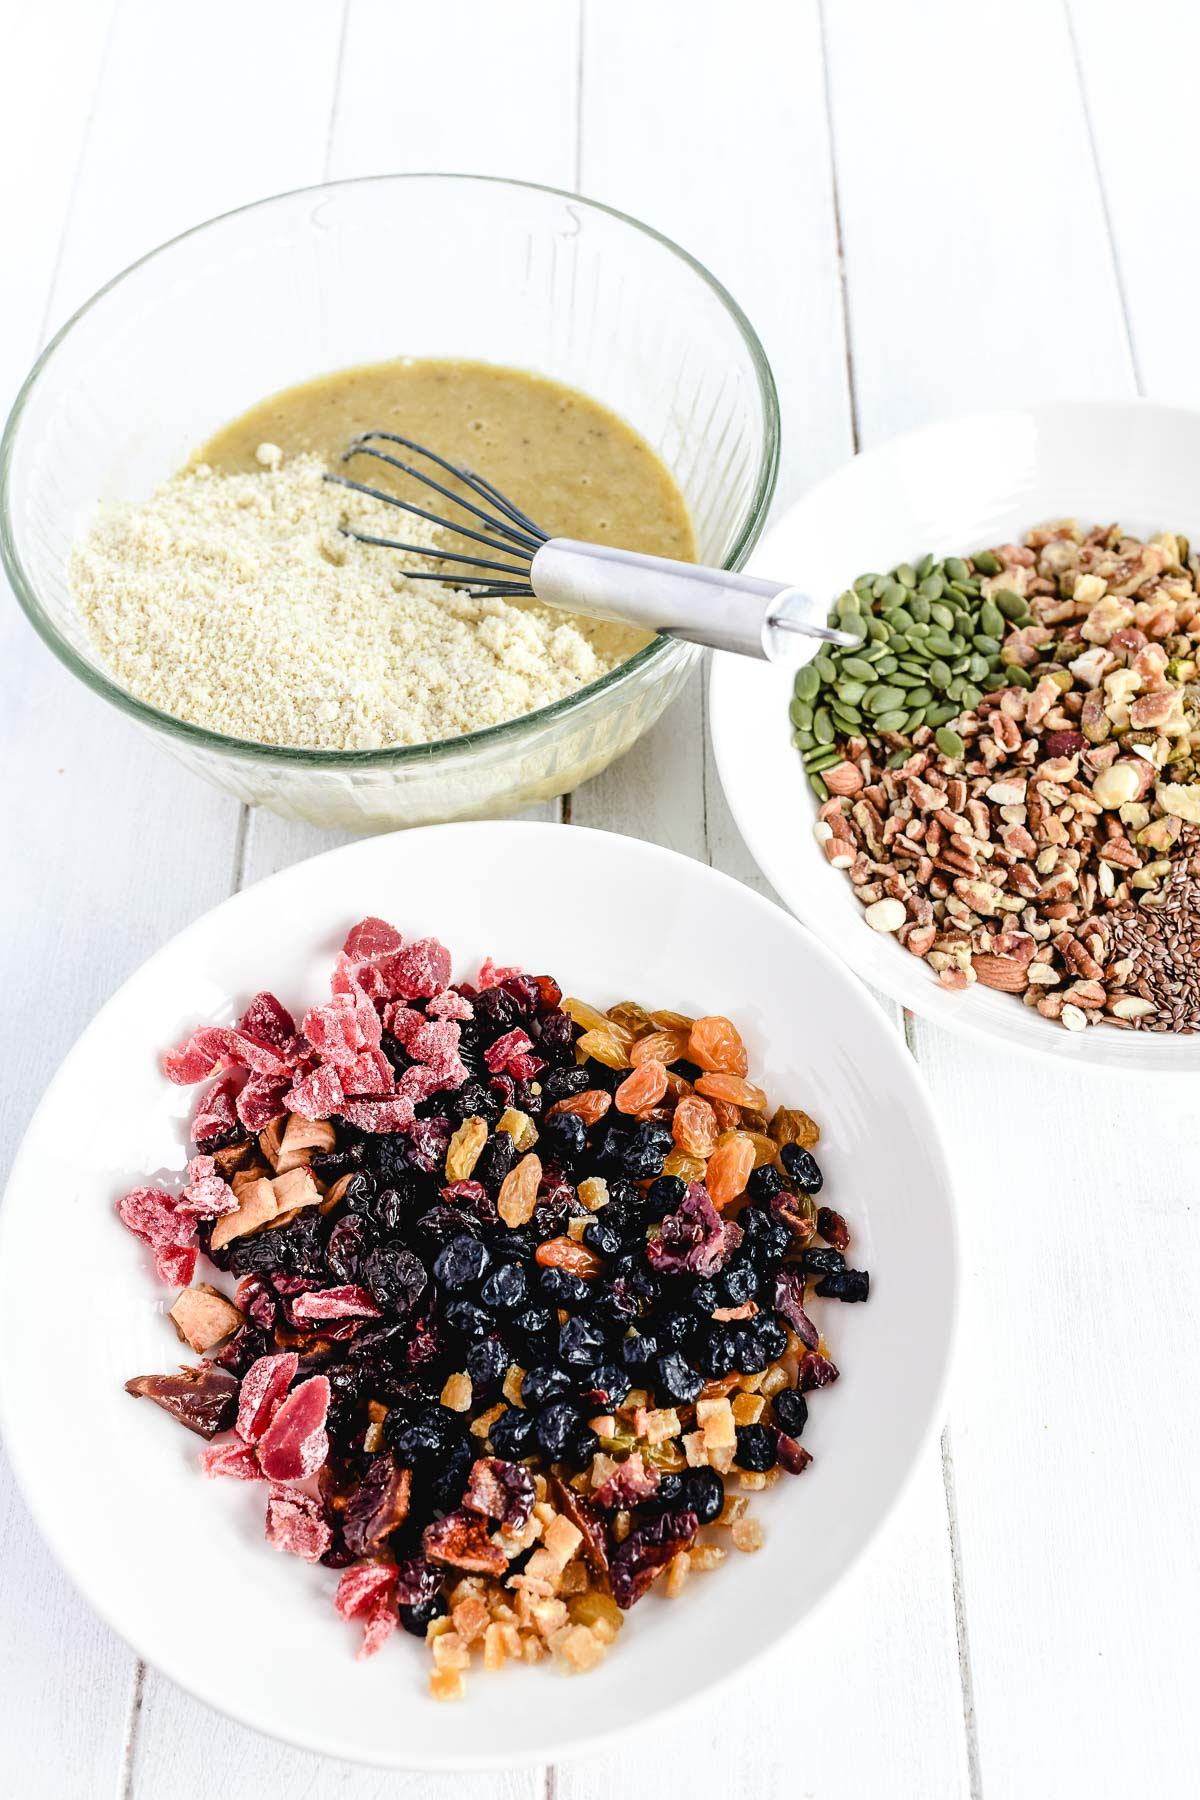 making paleo fruit and nut bread